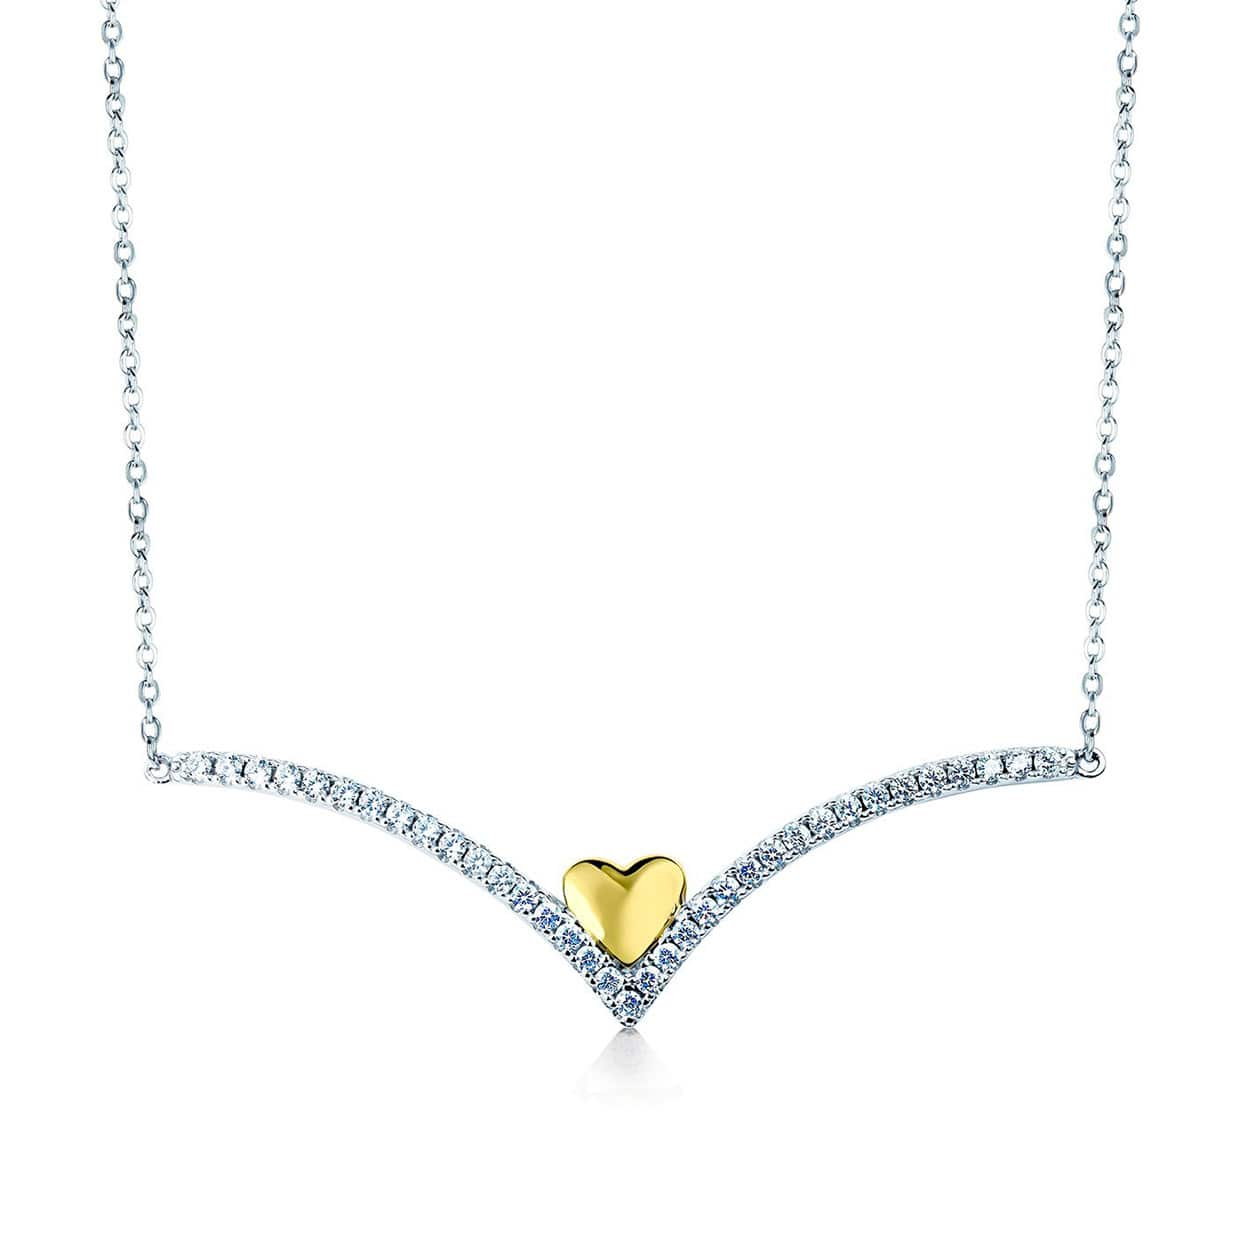 Loving Silver & Gold V Heart Necklace - Abelstedt